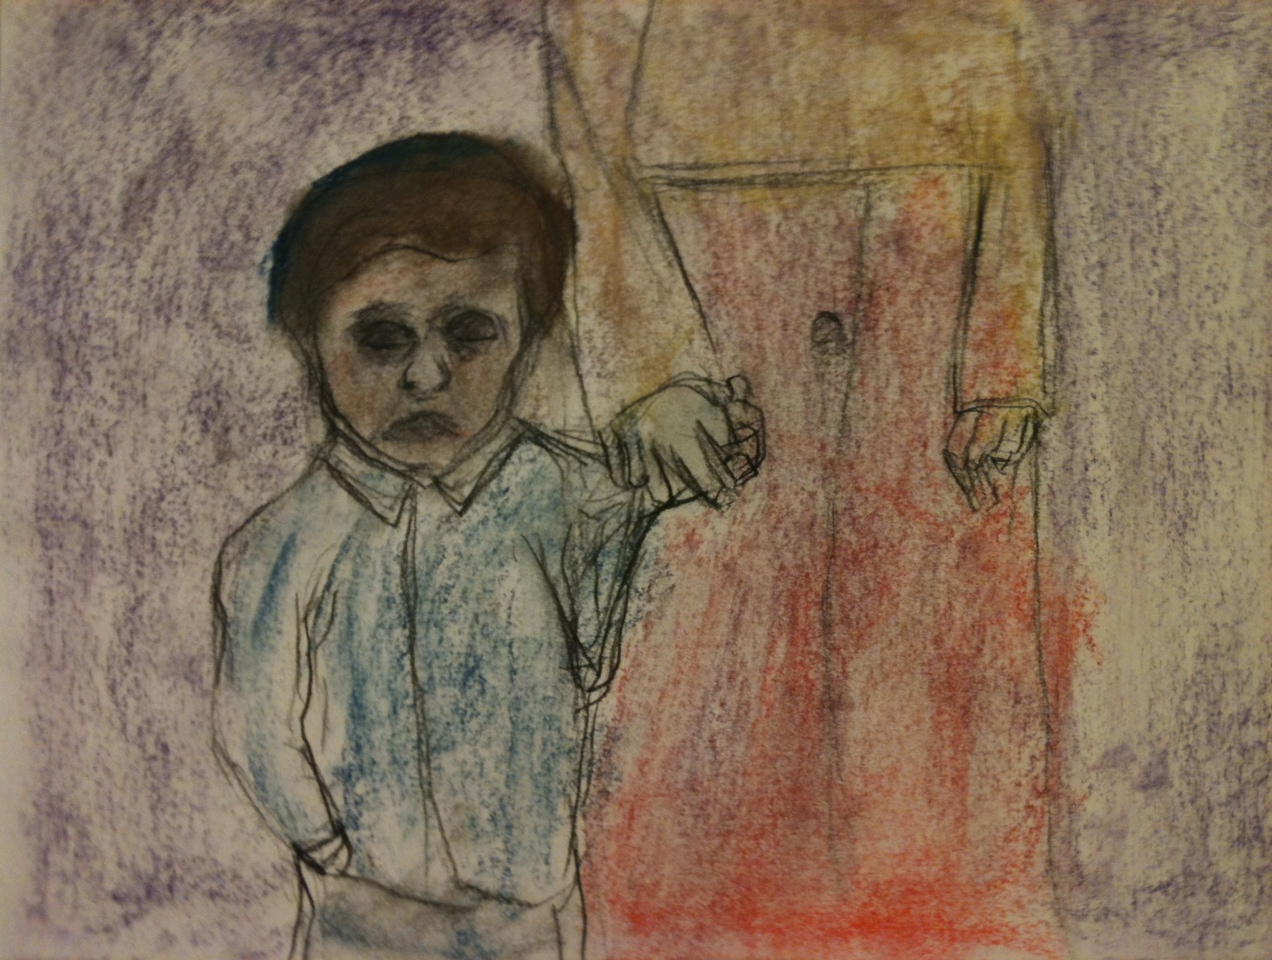 Child in Shtetl (pastel on paper)